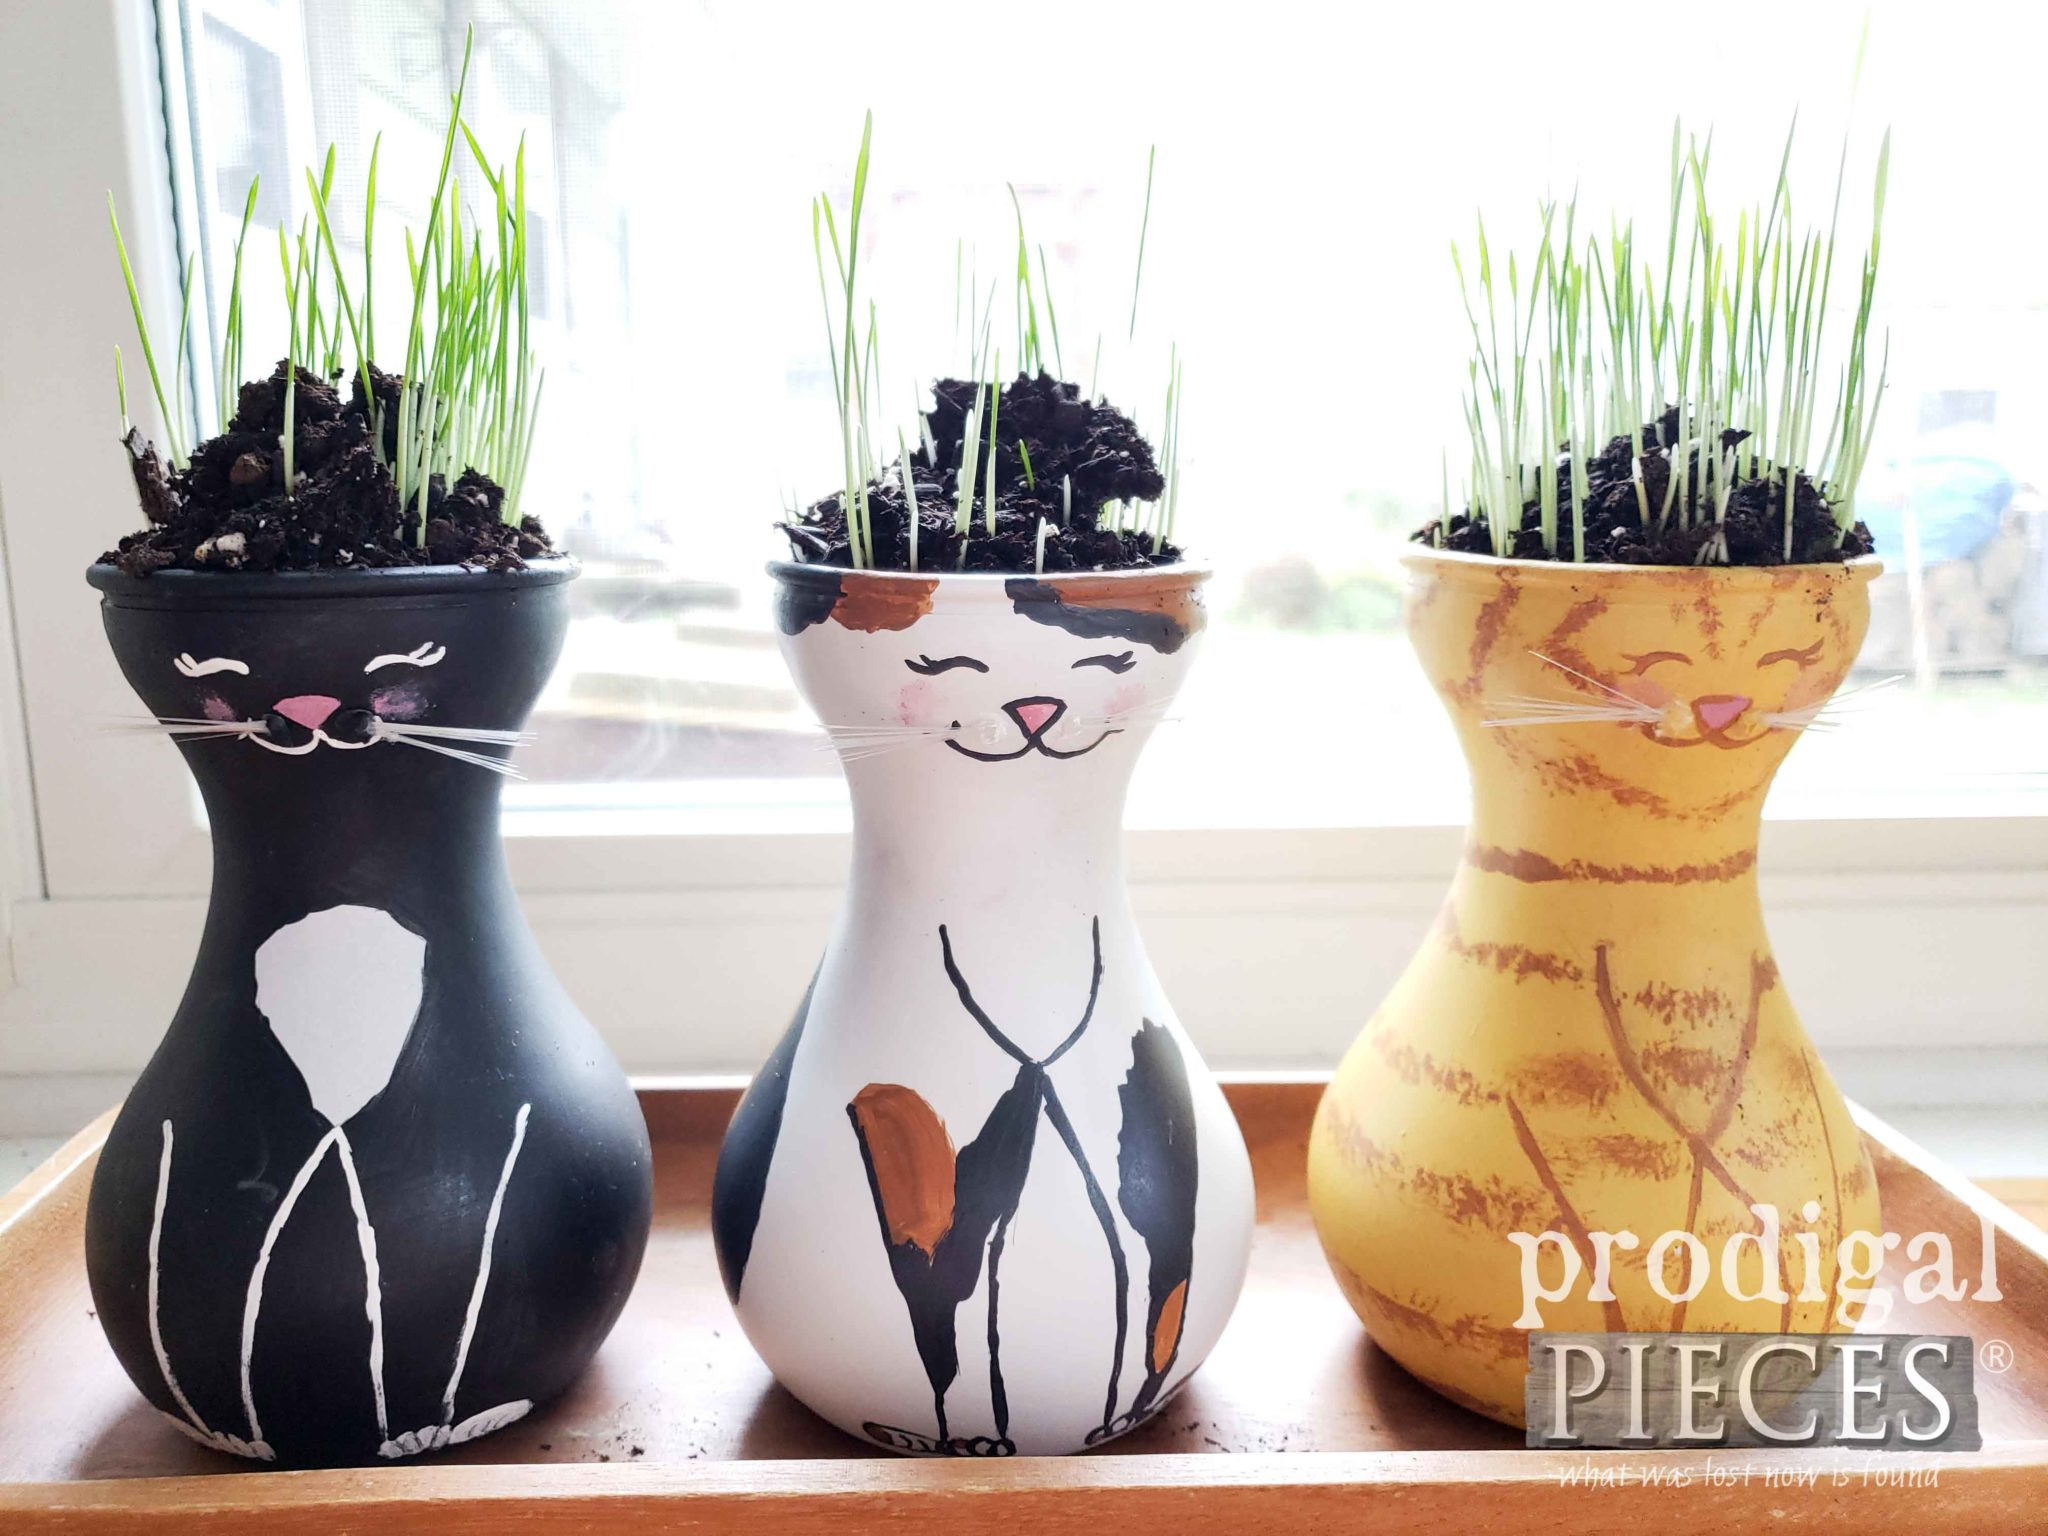 Seven Day Cat Grass Growth by Larissa of Prodigal Pieces | prodigalpieces.com #diy #home #gardening #cats #pets #health #food